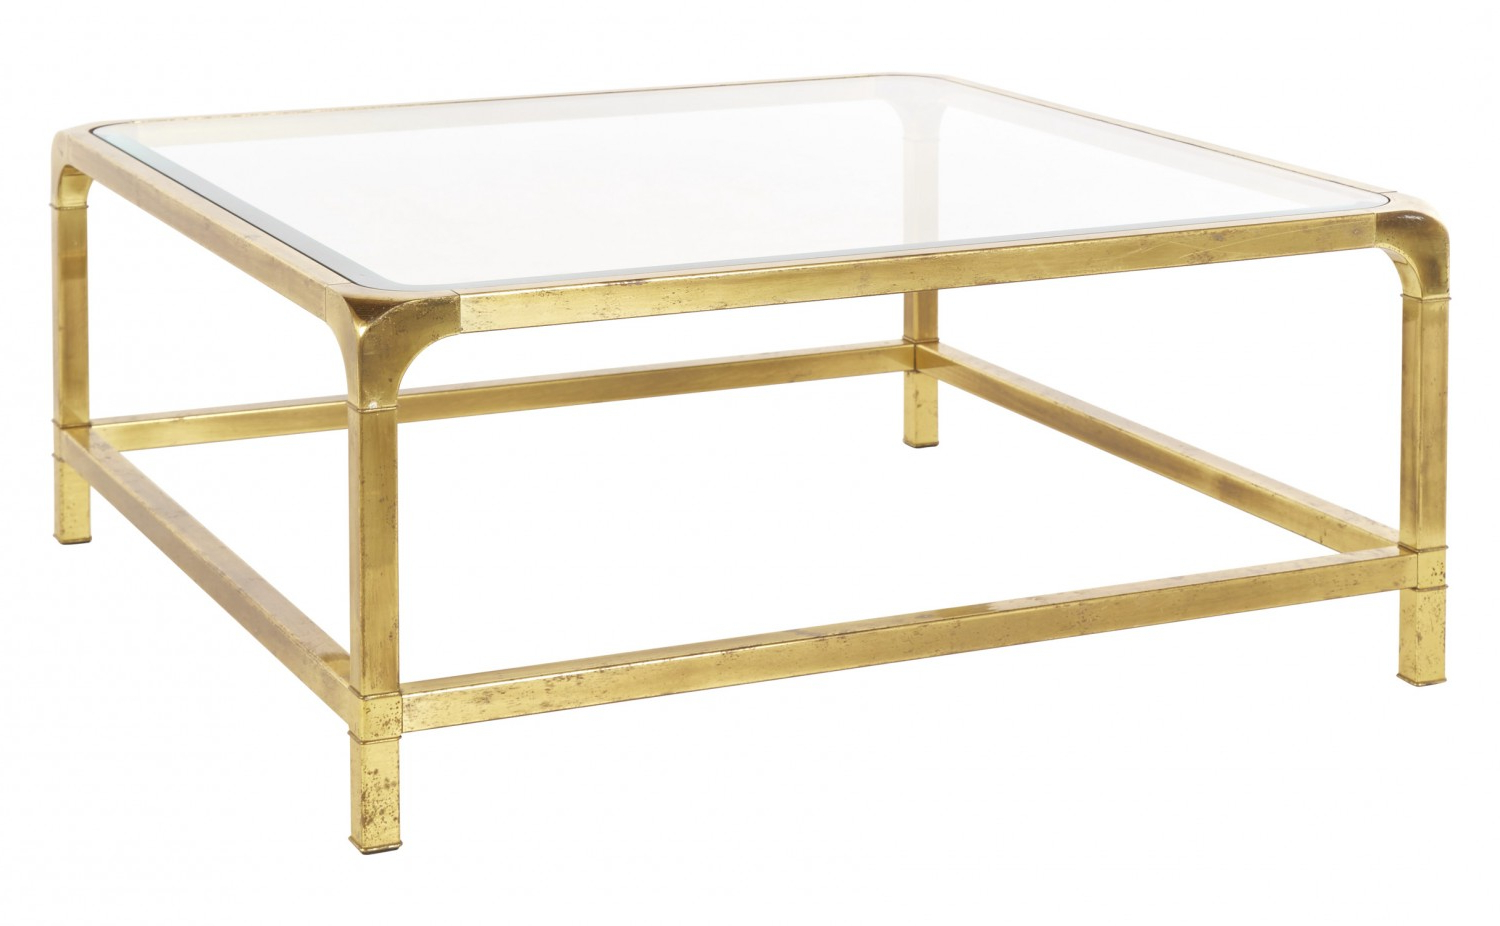 Jayson Home Pertaining To Antique Brass Coffee Tables (View 11 of 20)